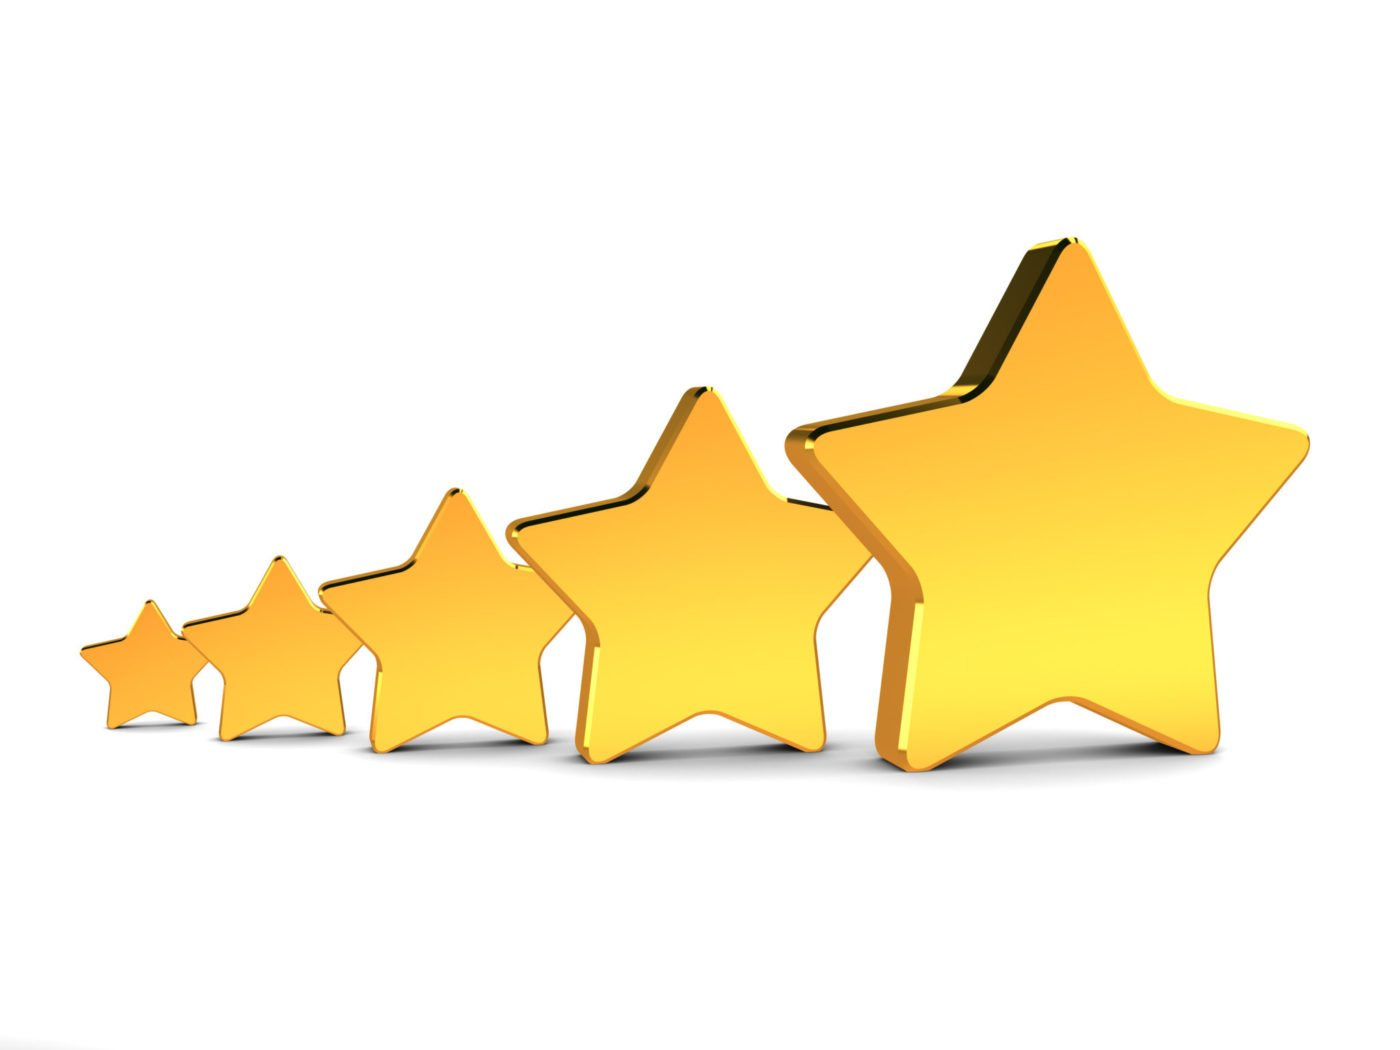 ZipRealty CEO Lanny Baker: An unbiased ratings and reviews system will improve your business